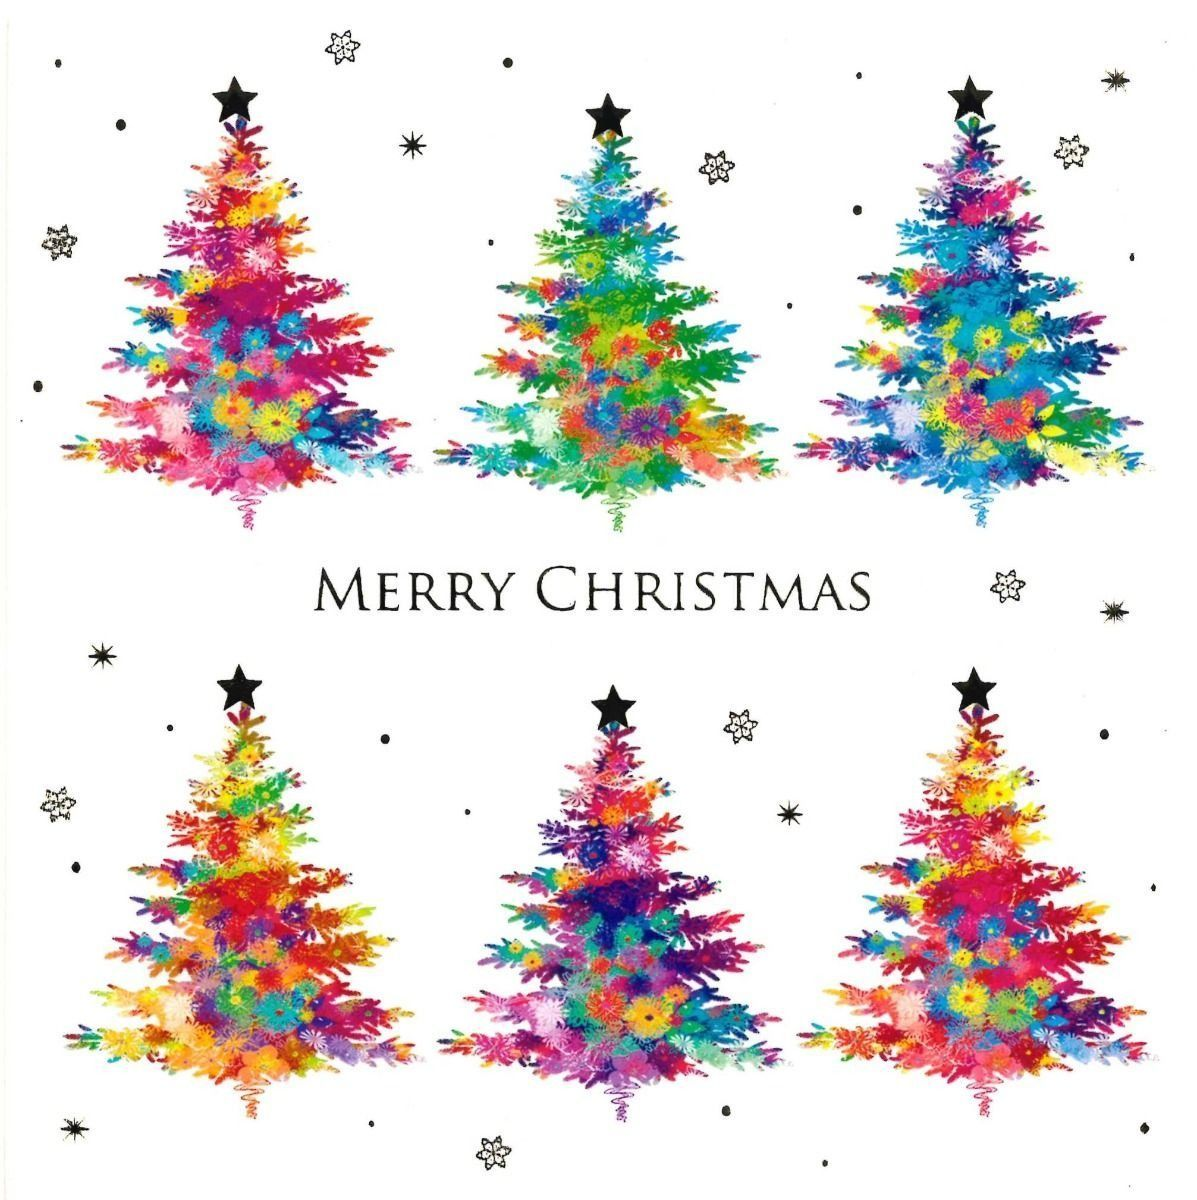 Bhf Christmas Cards In 2020 Watercolor Christmas Cards Christmas Card Crafts Diy Christmas Cards